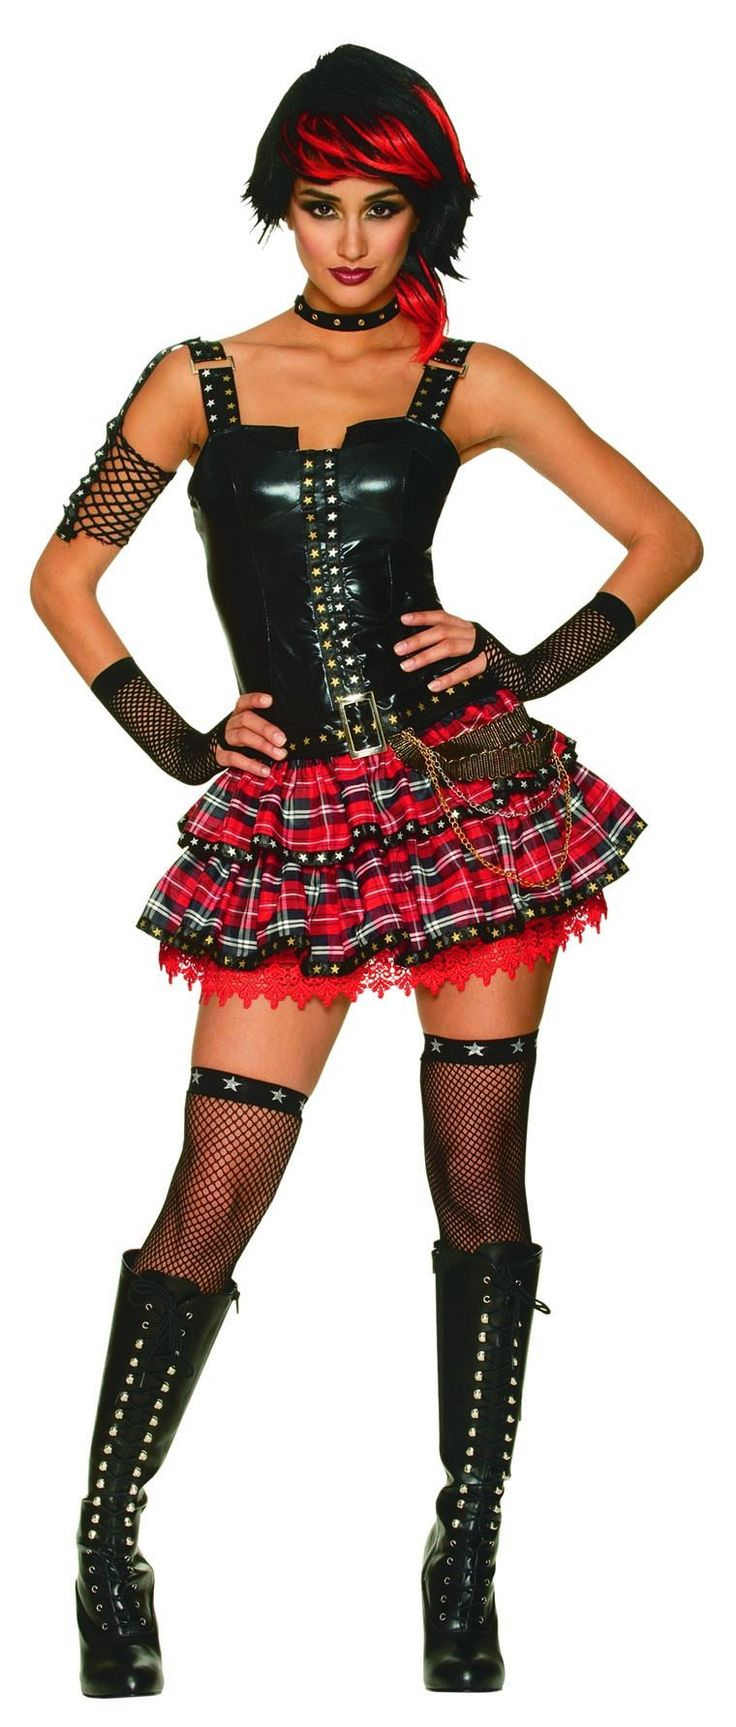 Amazoncom: punk rock costumes: Clothing, Shoes & Jewelry